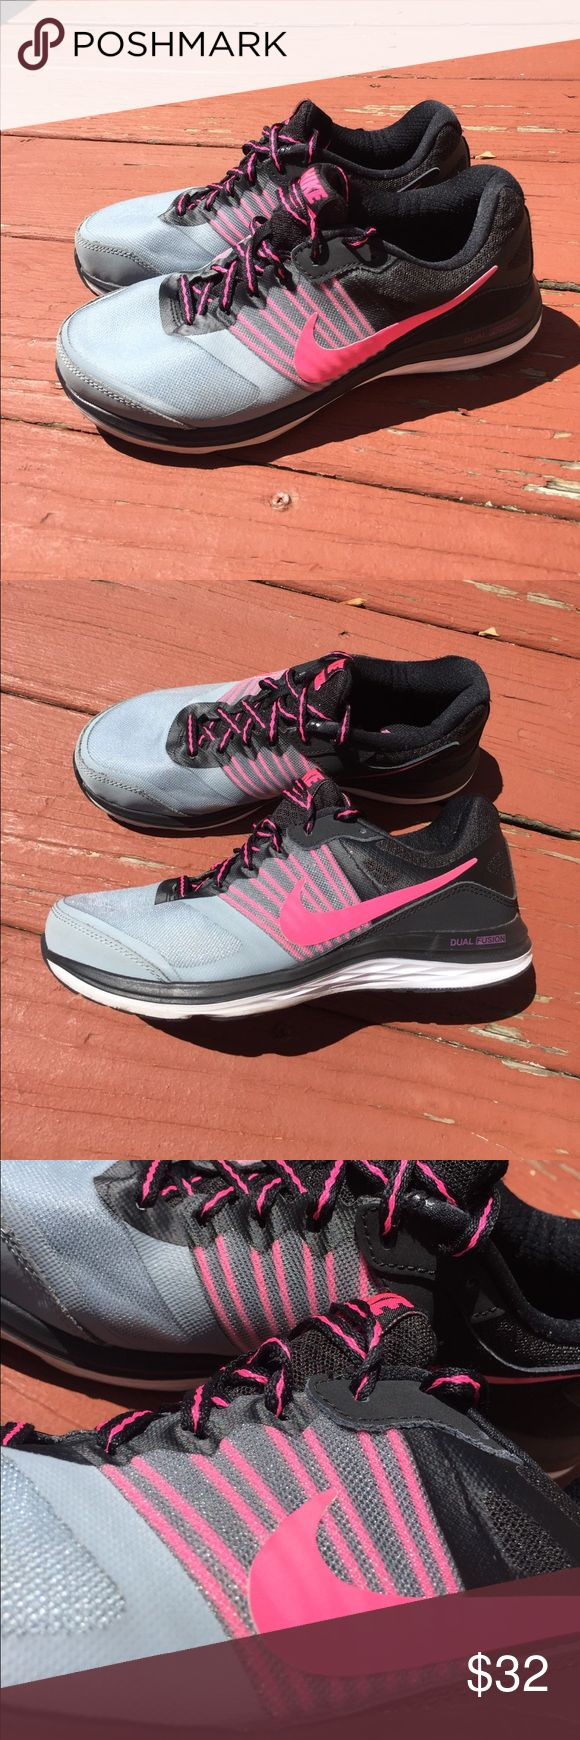 Nike Dual Fusion X Brand New! Black Pink Grey Sz 7 Brand new! Black and pink with grey mesh. Women's size 7. Nike on right inside layer is half gone - please see pics! Nike Shoes Athletic Shoes